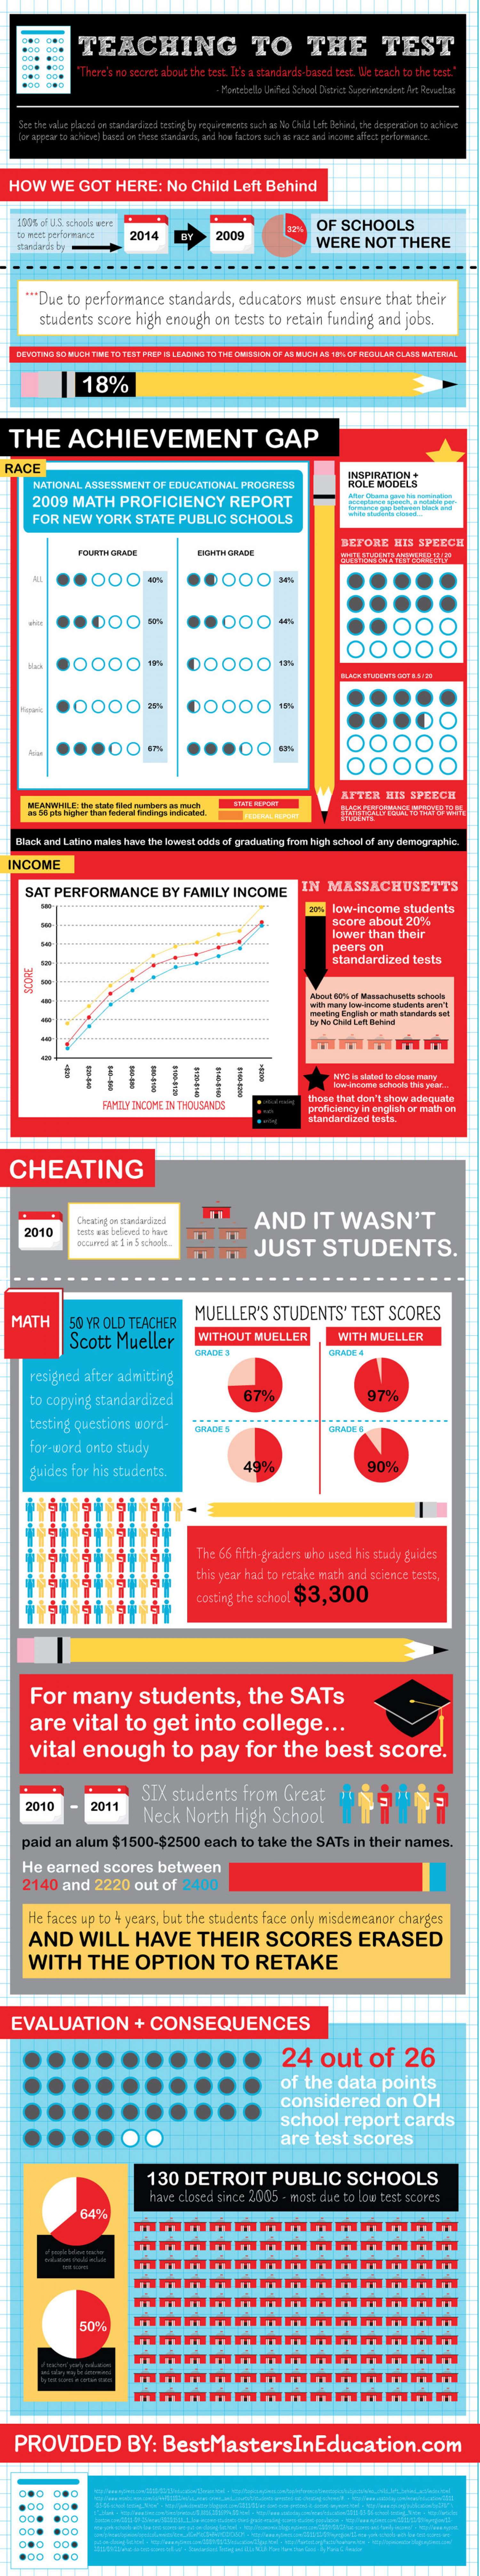 Teaching to the Test Infographic